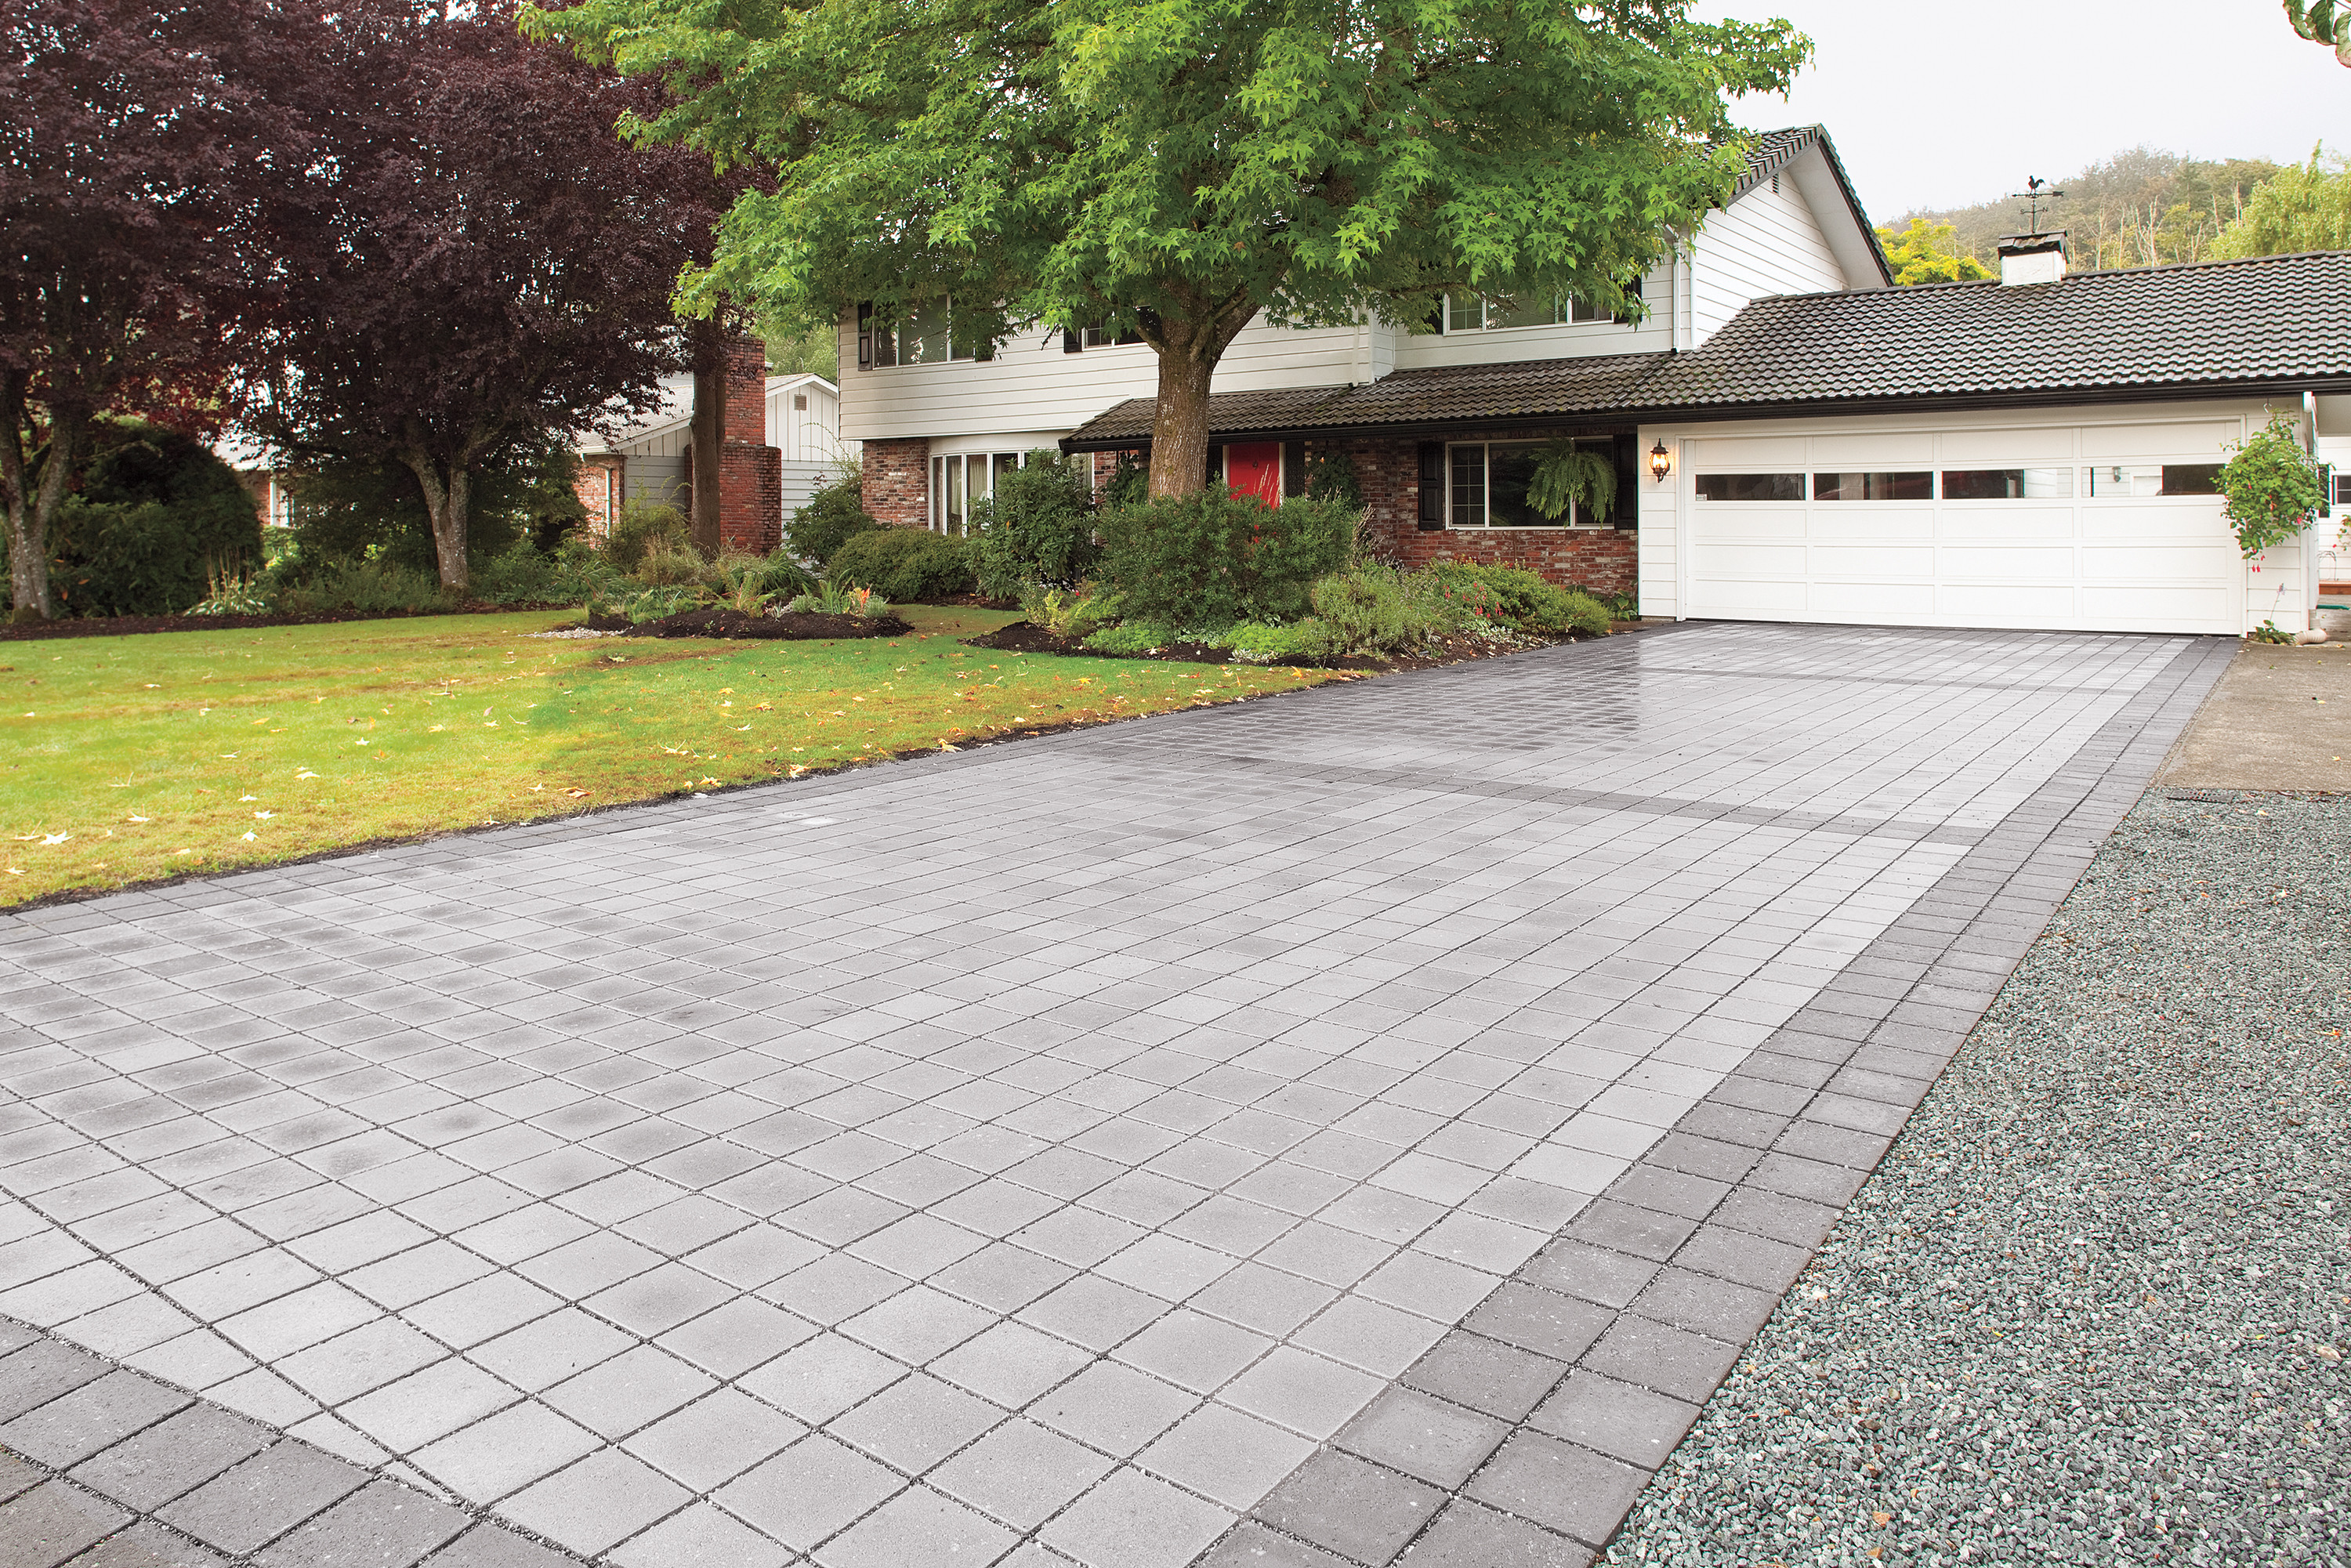 Best ideas about DIY Paver Driveway . Save or Pin How to Install a Permeable Paver Driveway Now.